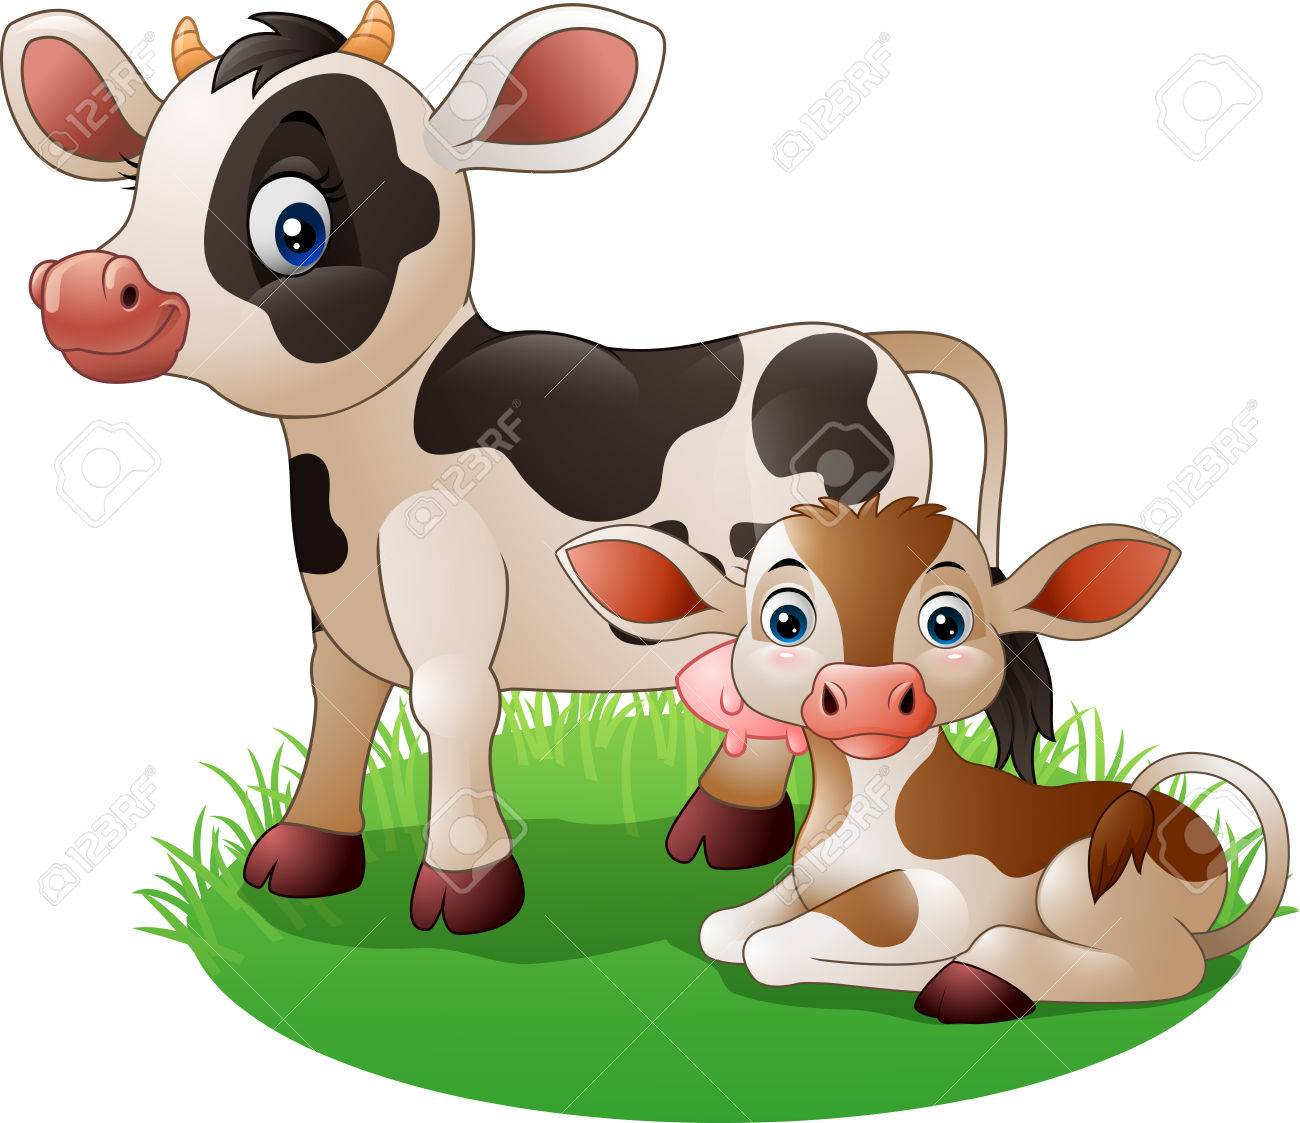 Vector Illustration Of Cartoon Cow With Newborn Calf Royalty Free ... for Cow And Calf Clipart  58lpg